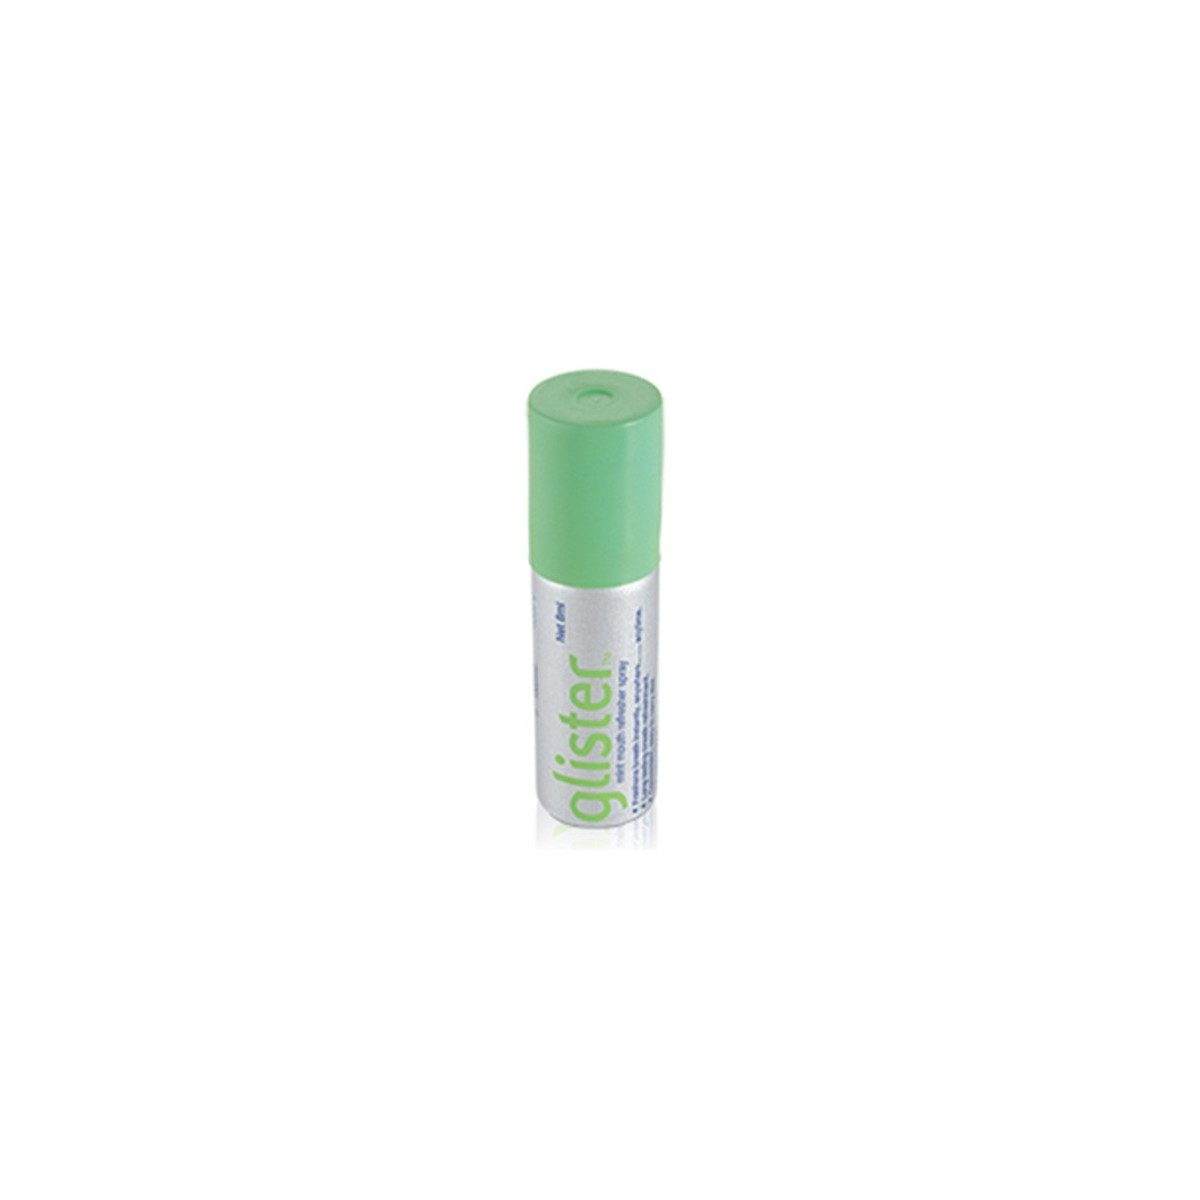 Amway GLISTER Mouth Freshener Spray (mint)